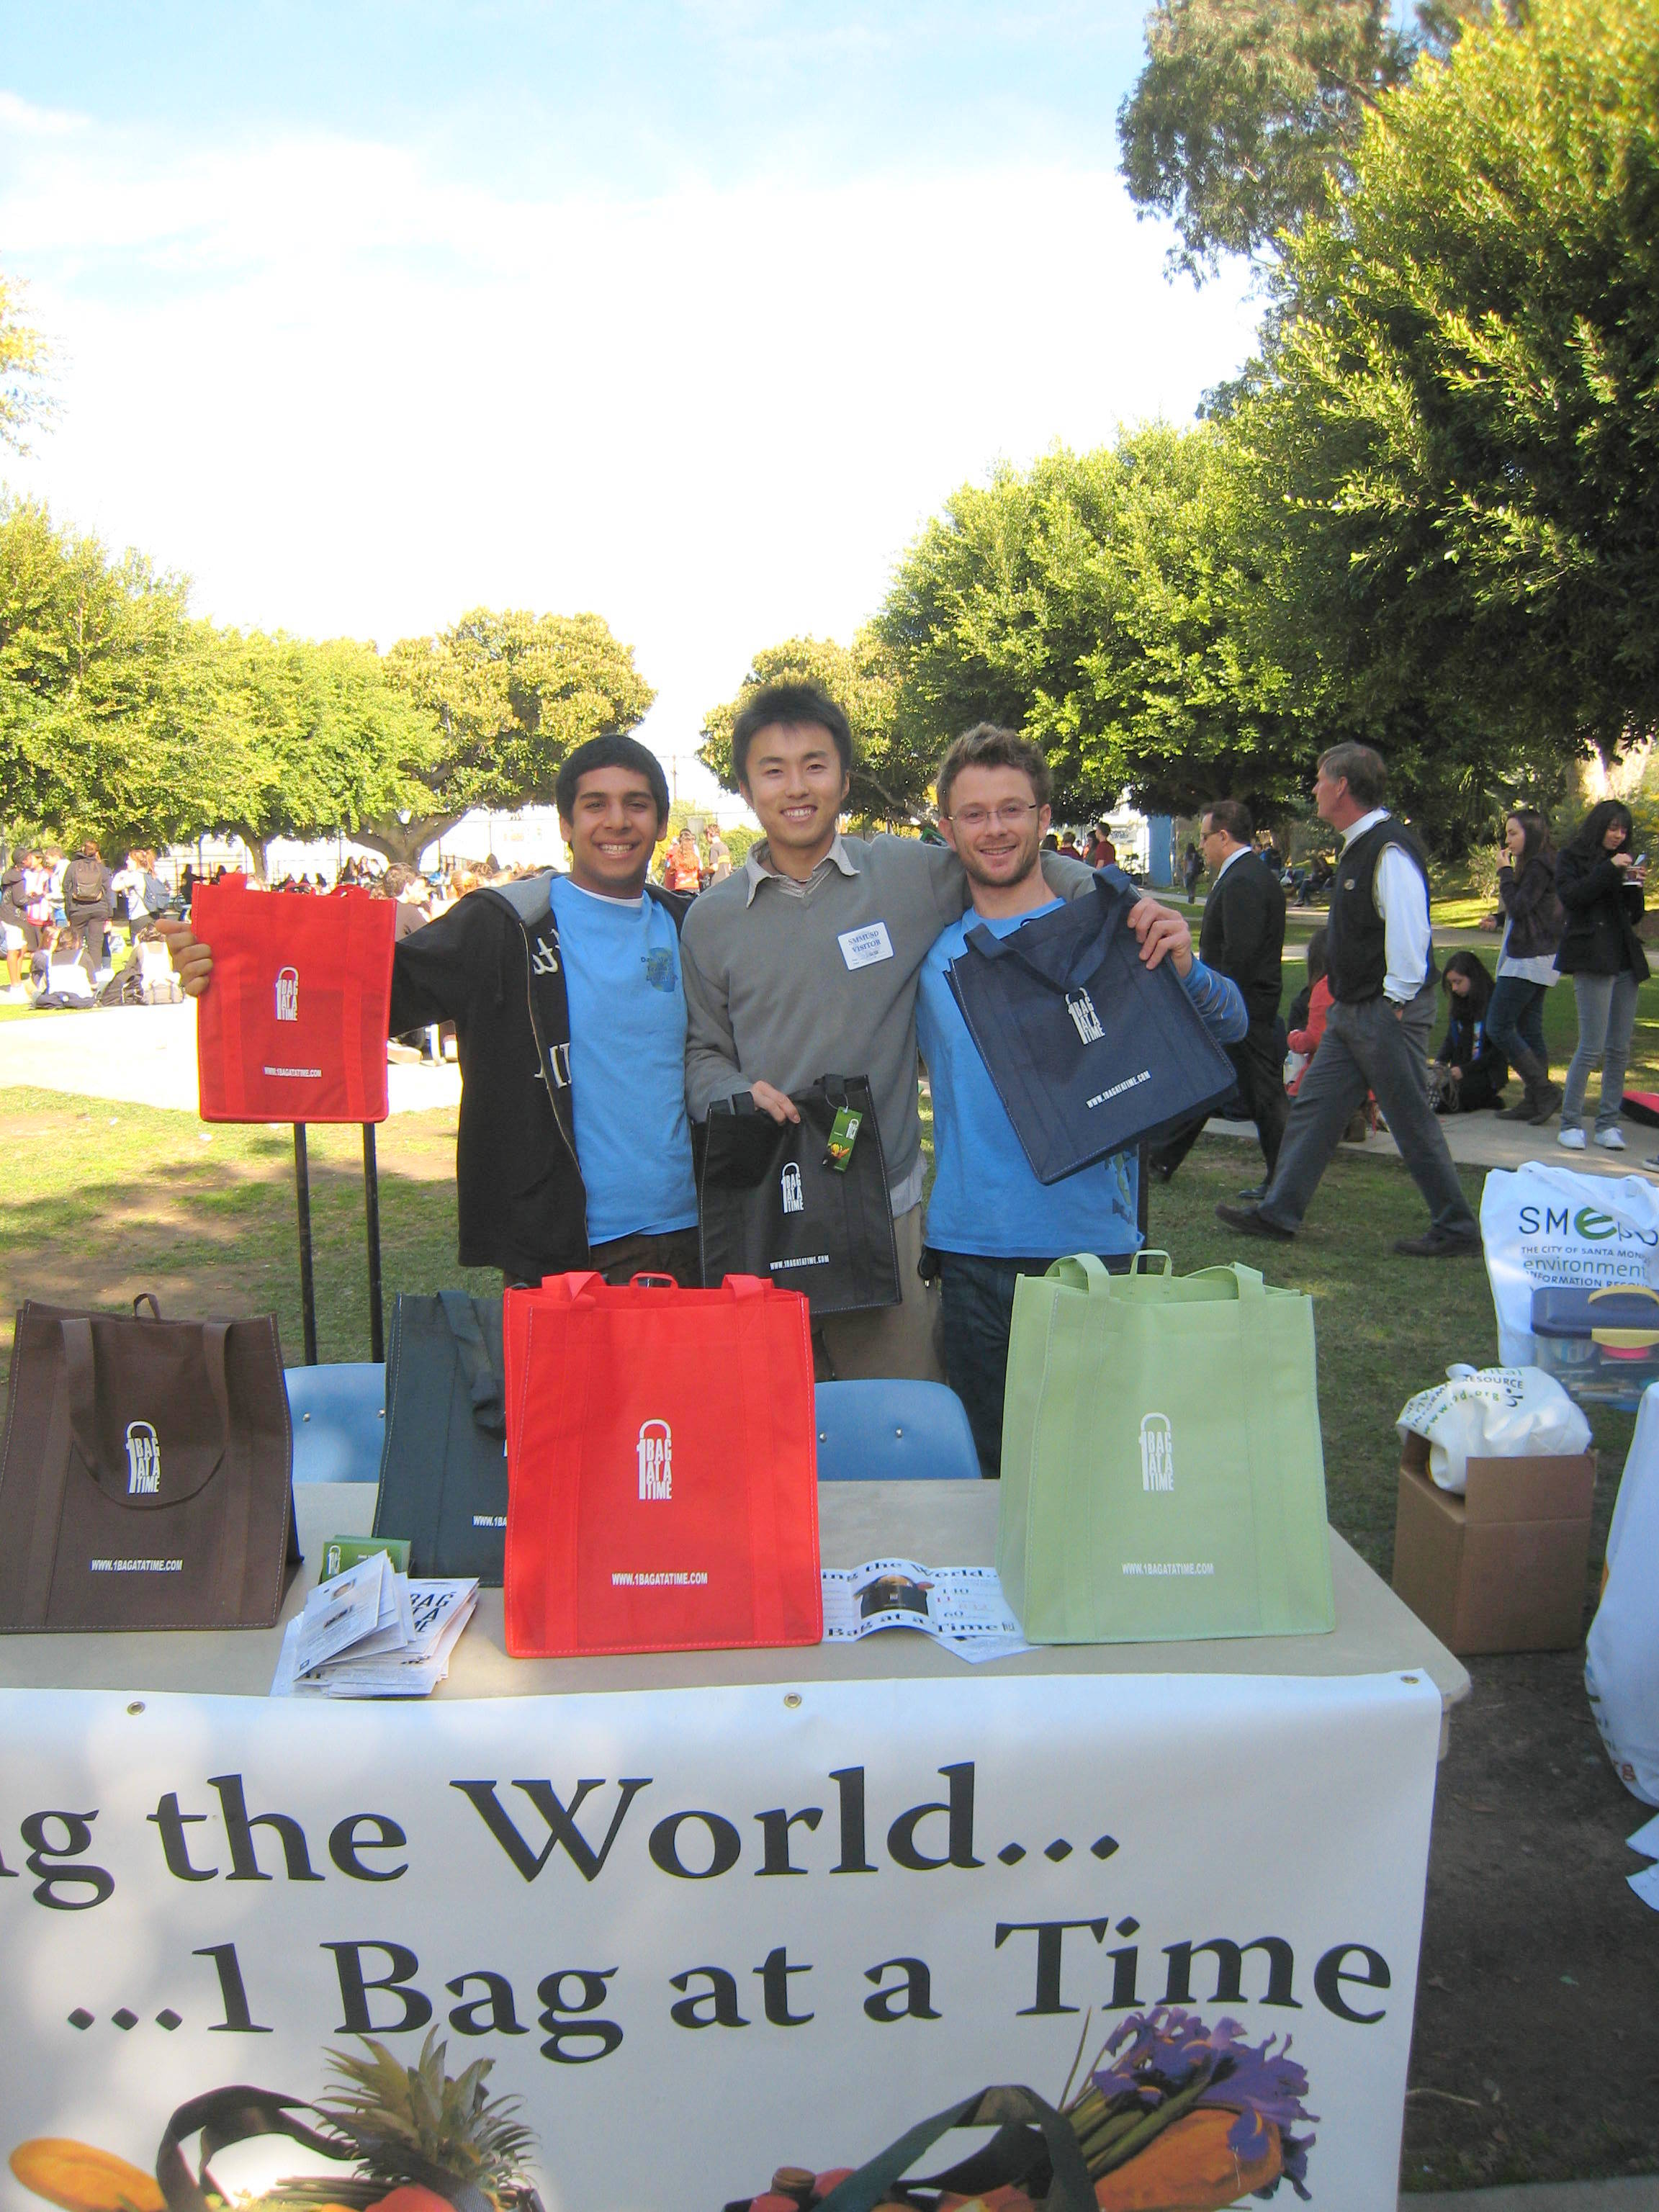 Team Marine with Sho Takahashi for 1 Bag At A Time